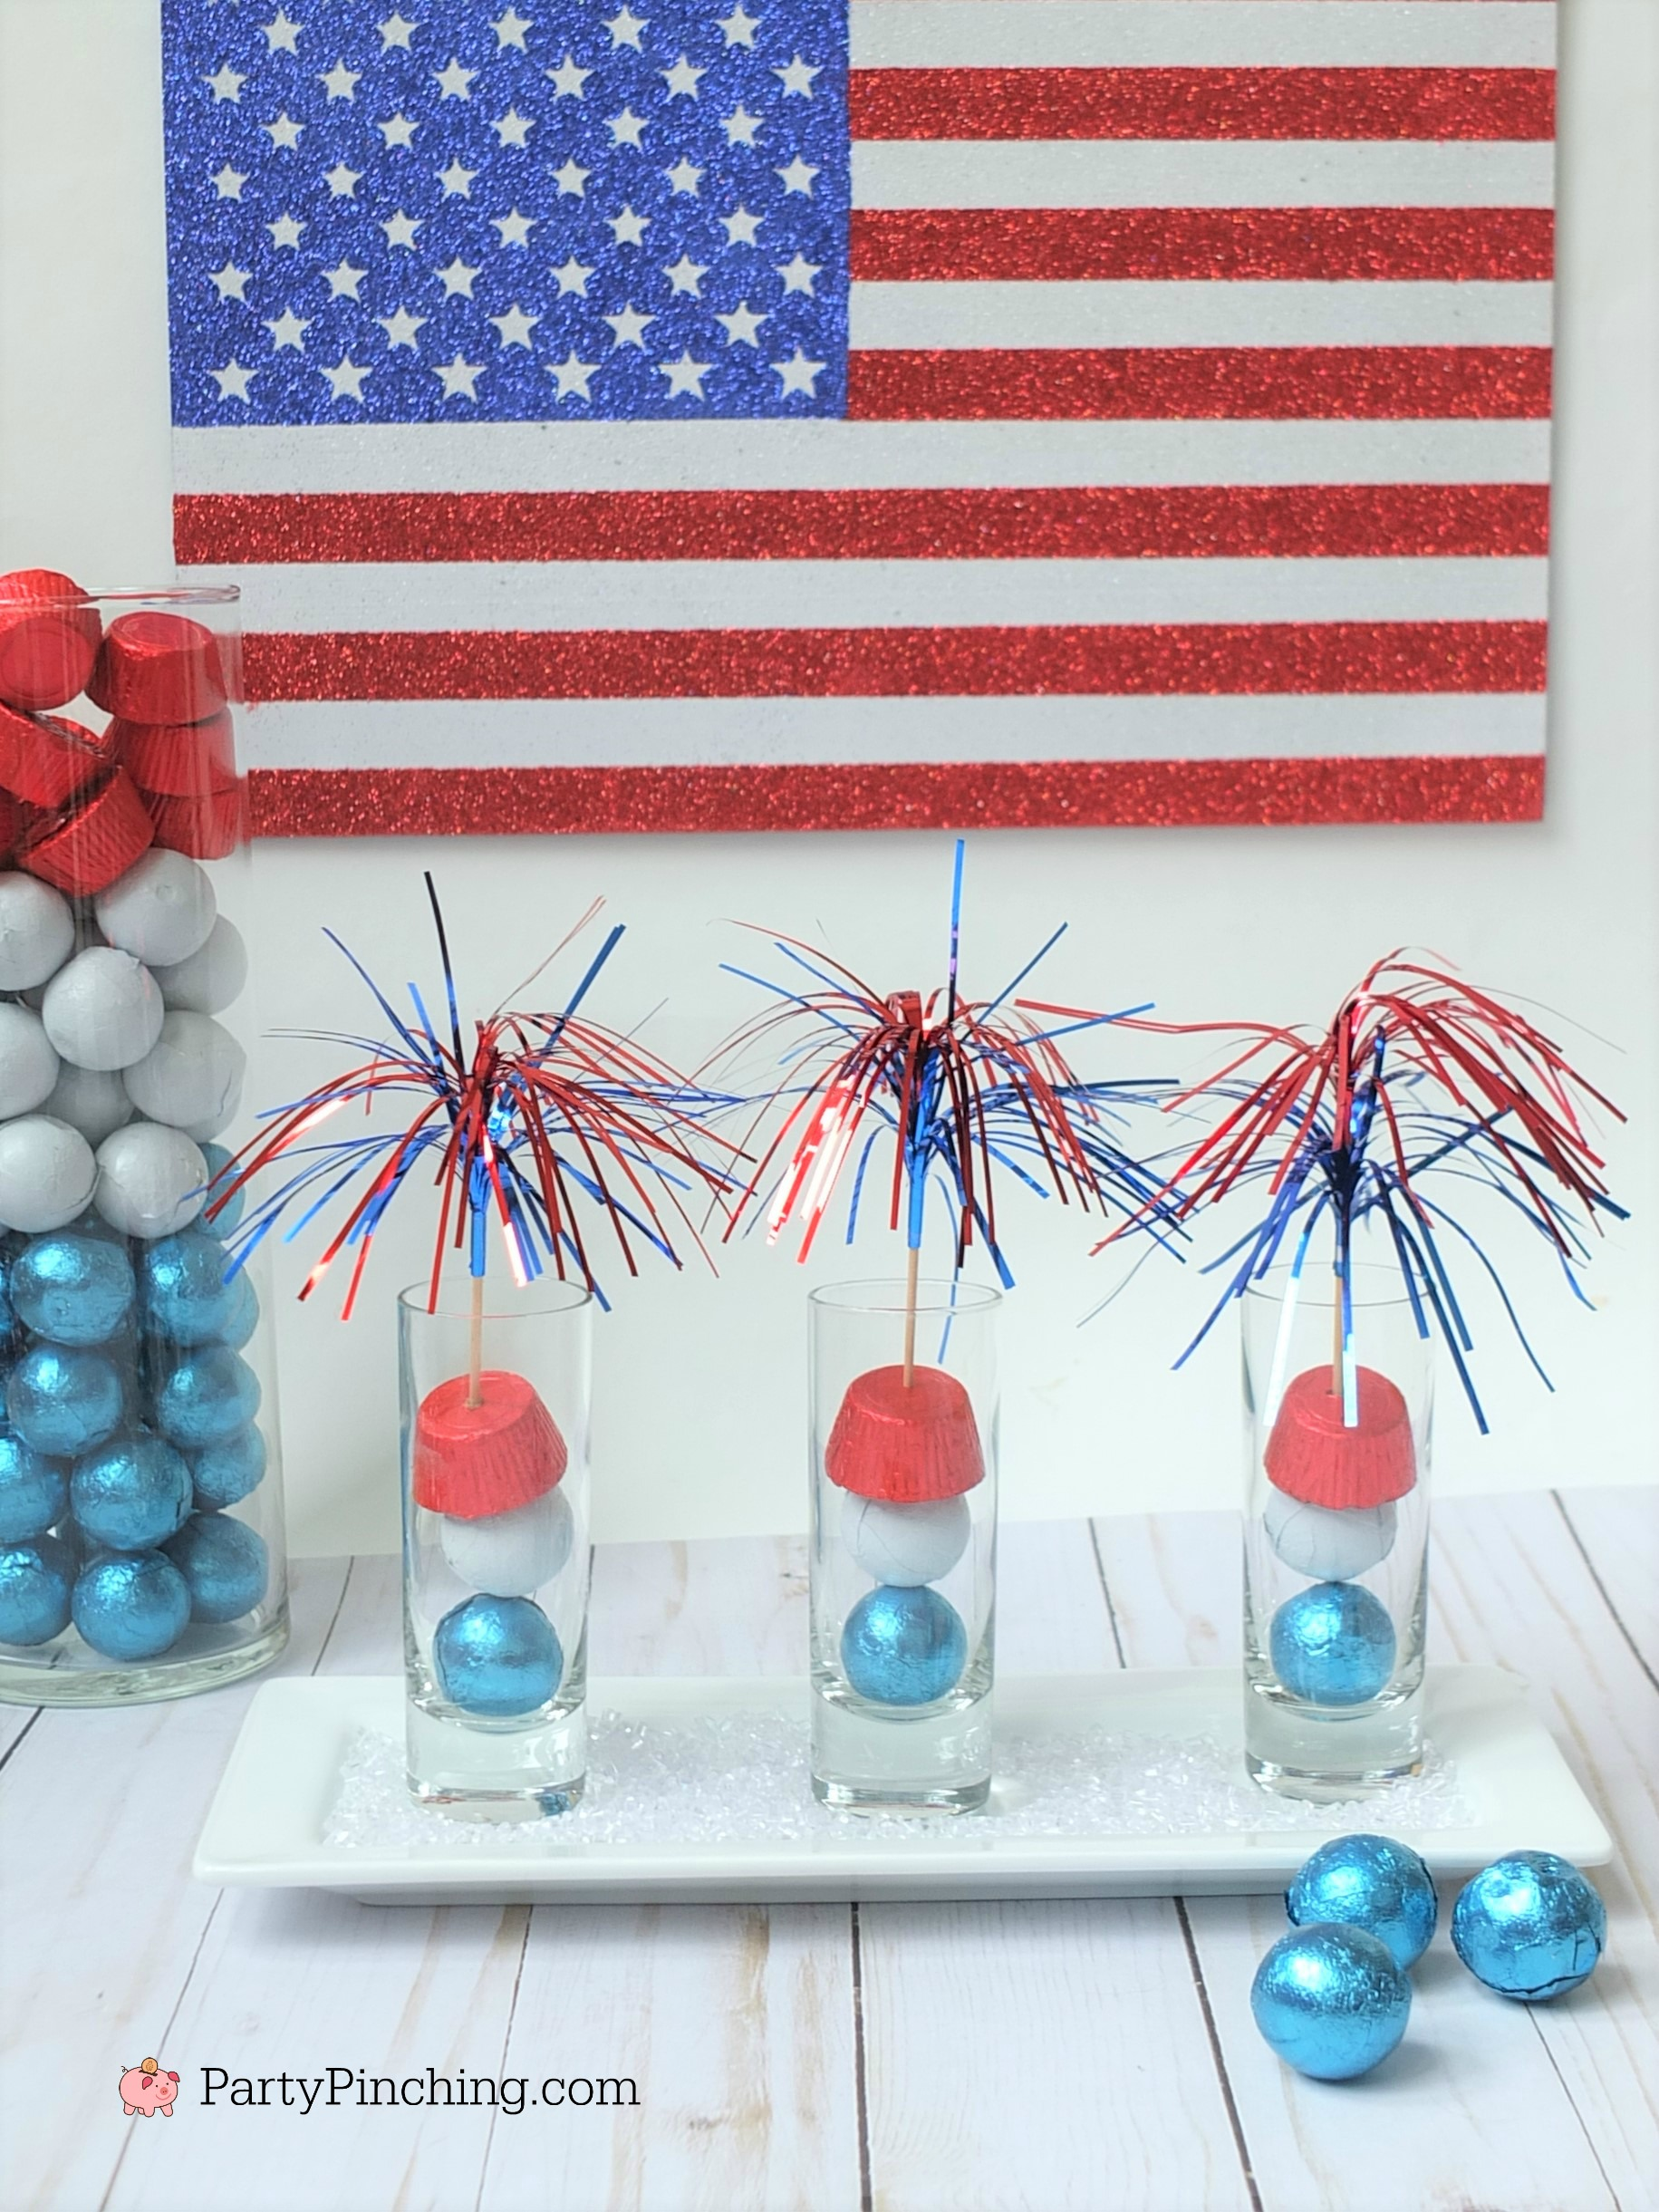 4th of July candy, 4th of July treat ideas, Independence Day party ideas, Memorial Day food ideas, cute food, fun food for kids, firecracker candy, easy recipe ideas for 4th of July, RM Palmer candy red white blue